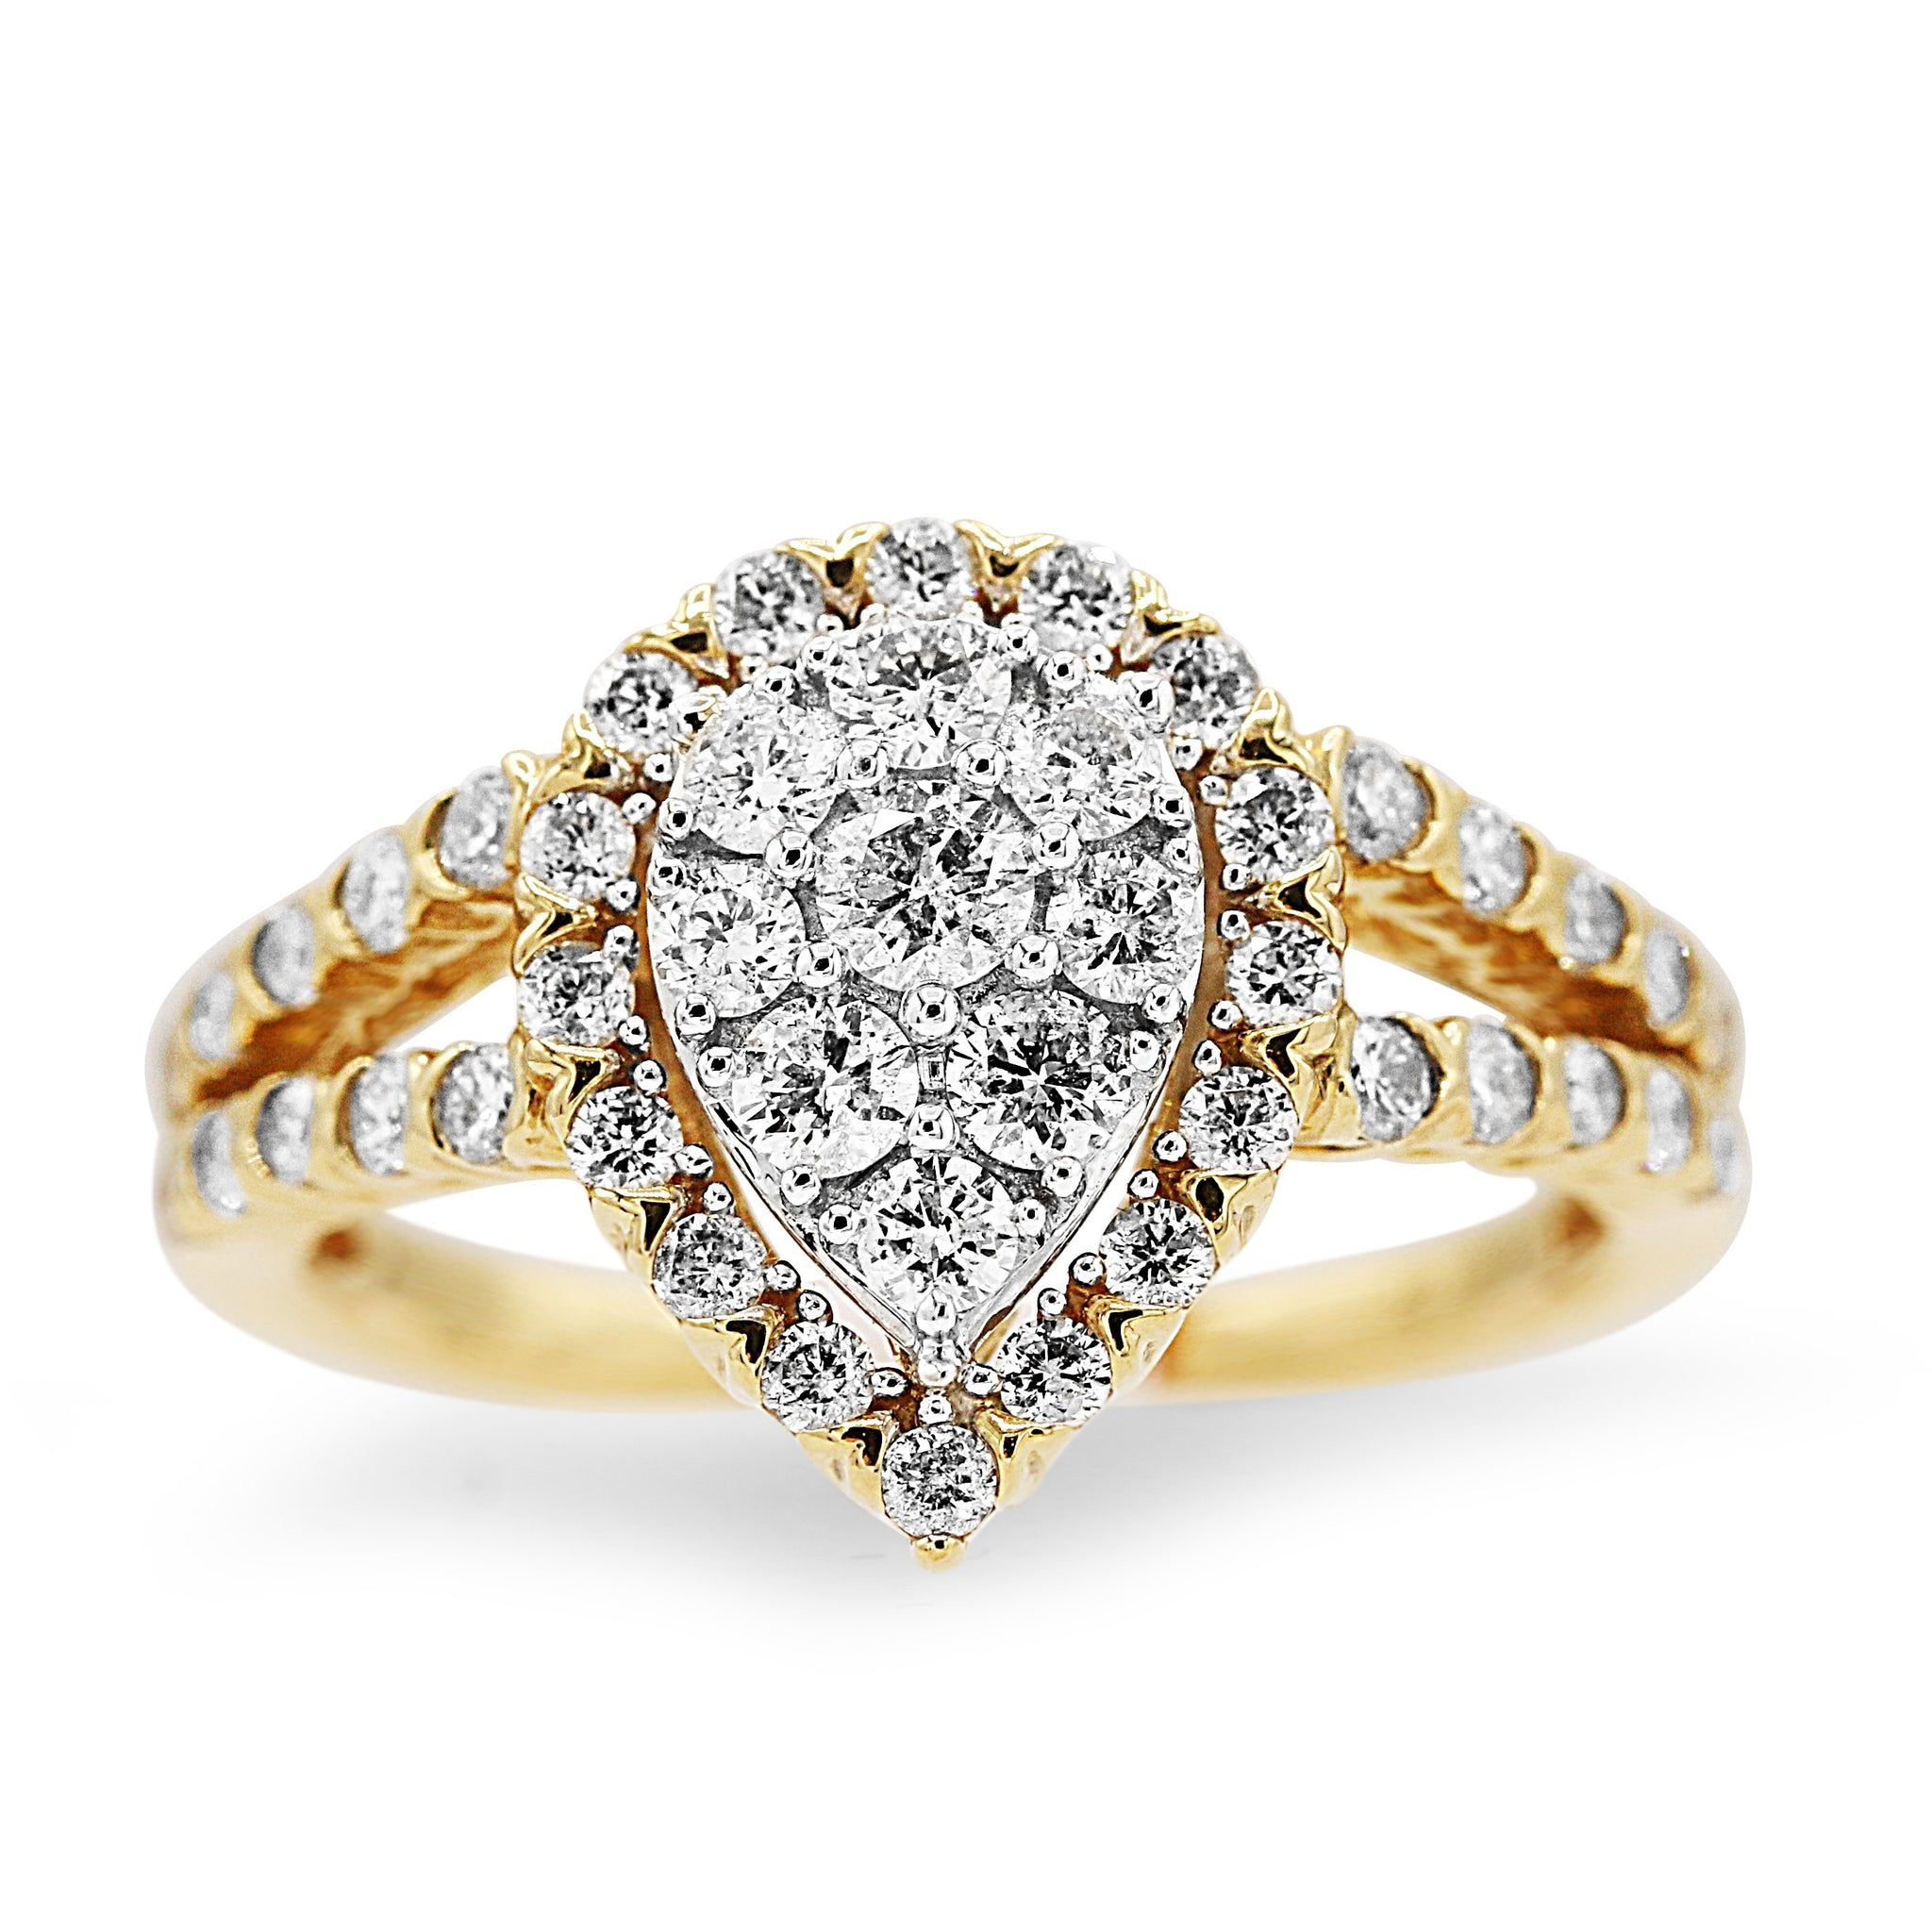 Sparkling 14k Pear Shaped Cluster Diamond Ring from Gainesville Jewelry Georgia